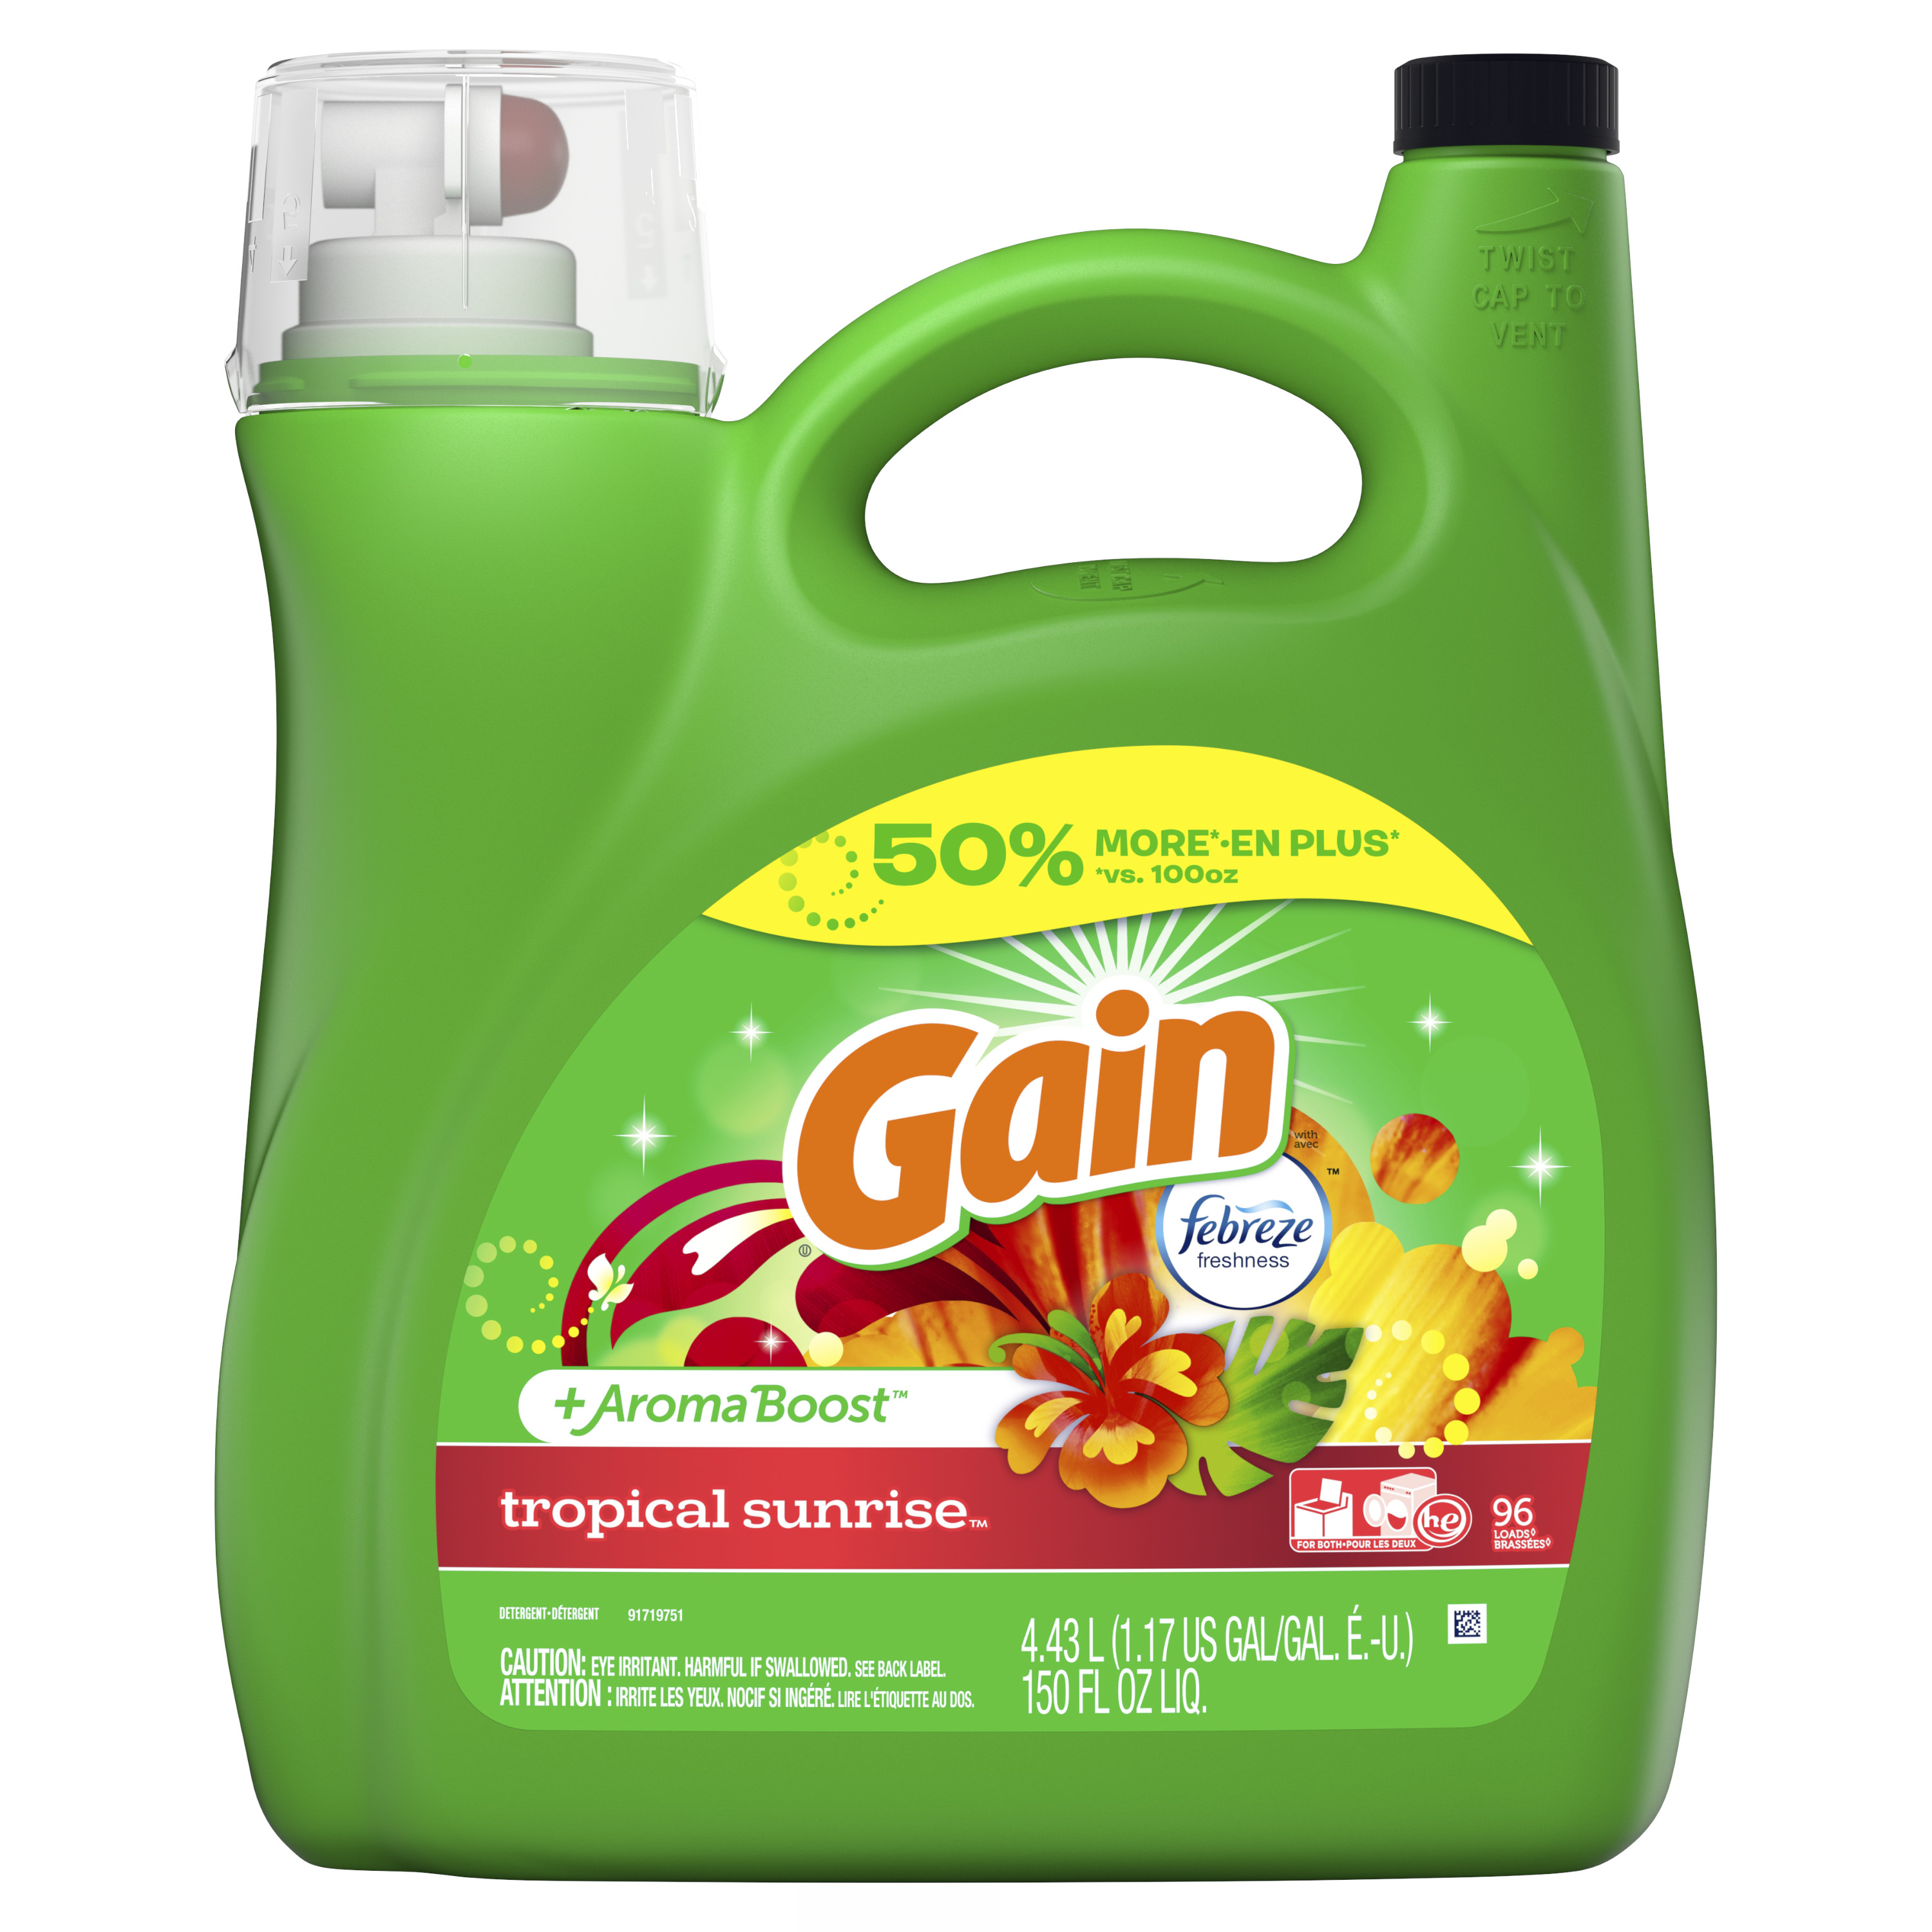 Gain + Aroma Boost Liquid Laundry Detergent with Febreze Freshness, Tropical Sunrise, 96 Loads 150 fl oz